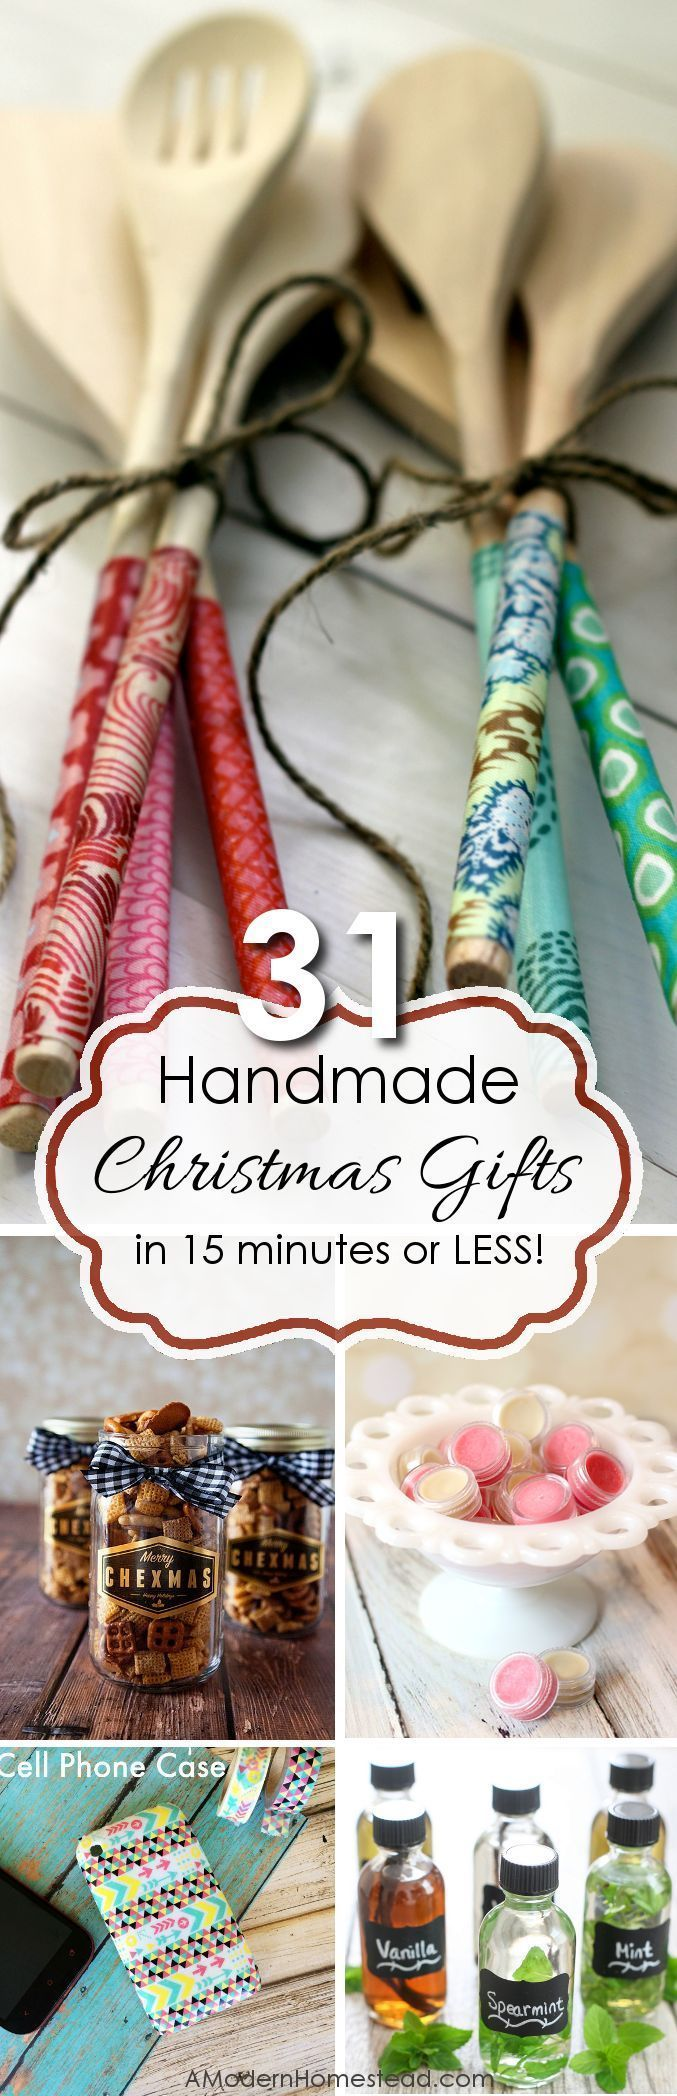 Handmade gifts in 15 minutes or less! - Christmas gifts - Handic ...